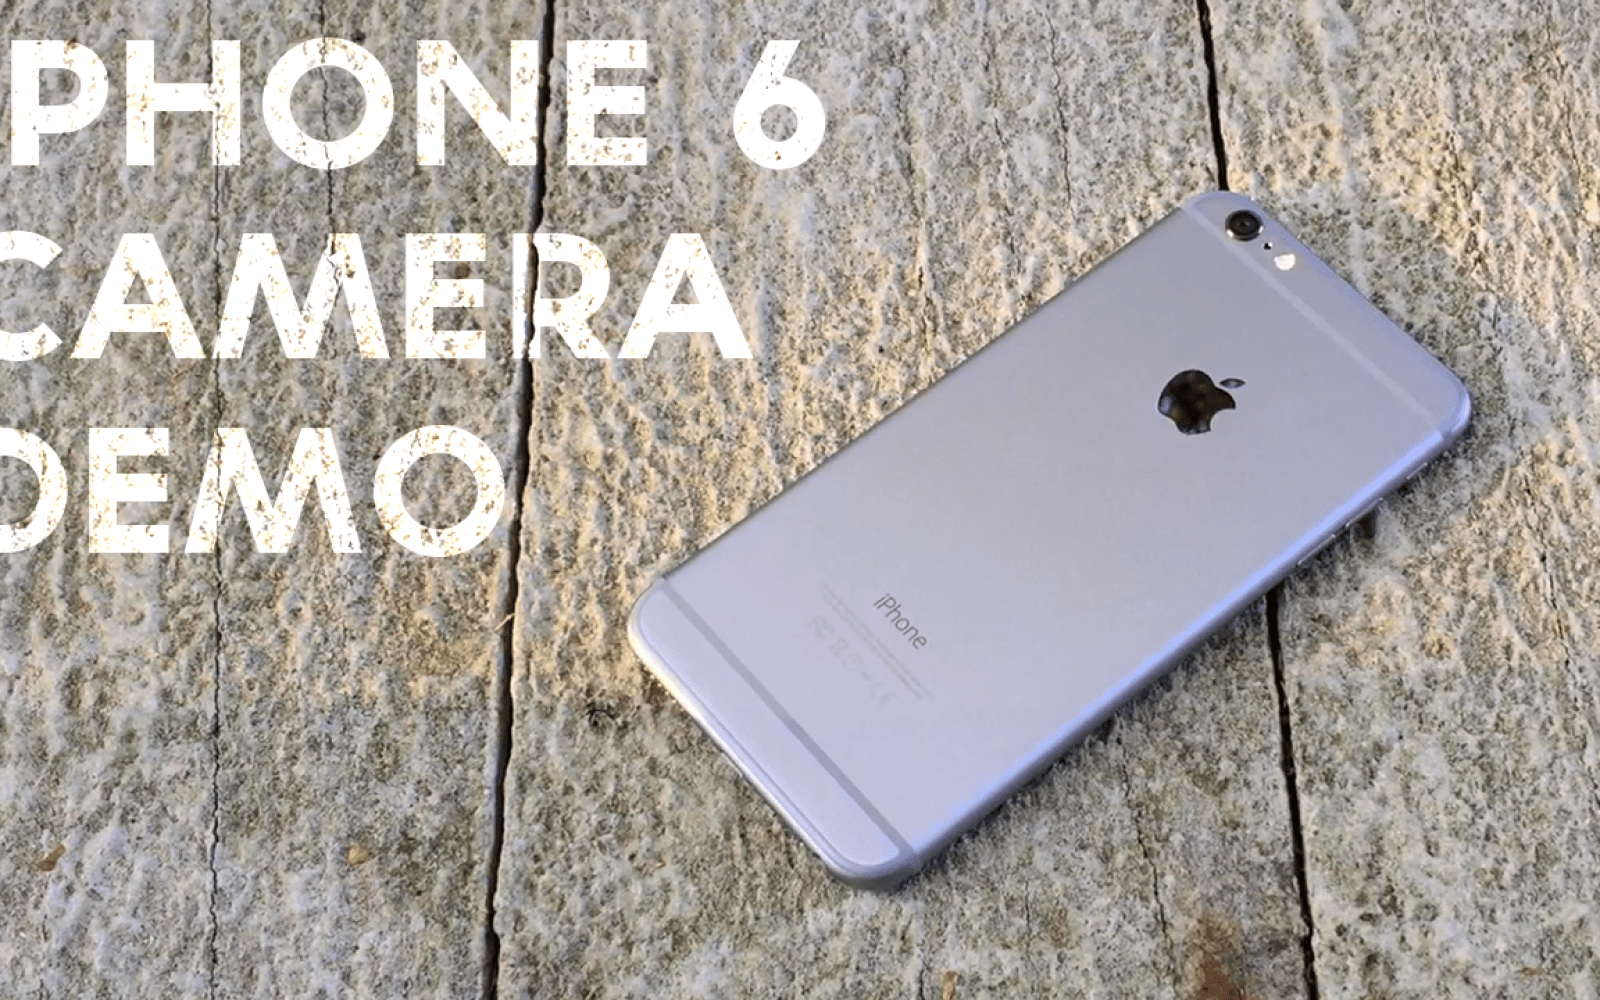 Epic iPhone 6 and iPhone 6 Plus cinematic camera demo (Video)